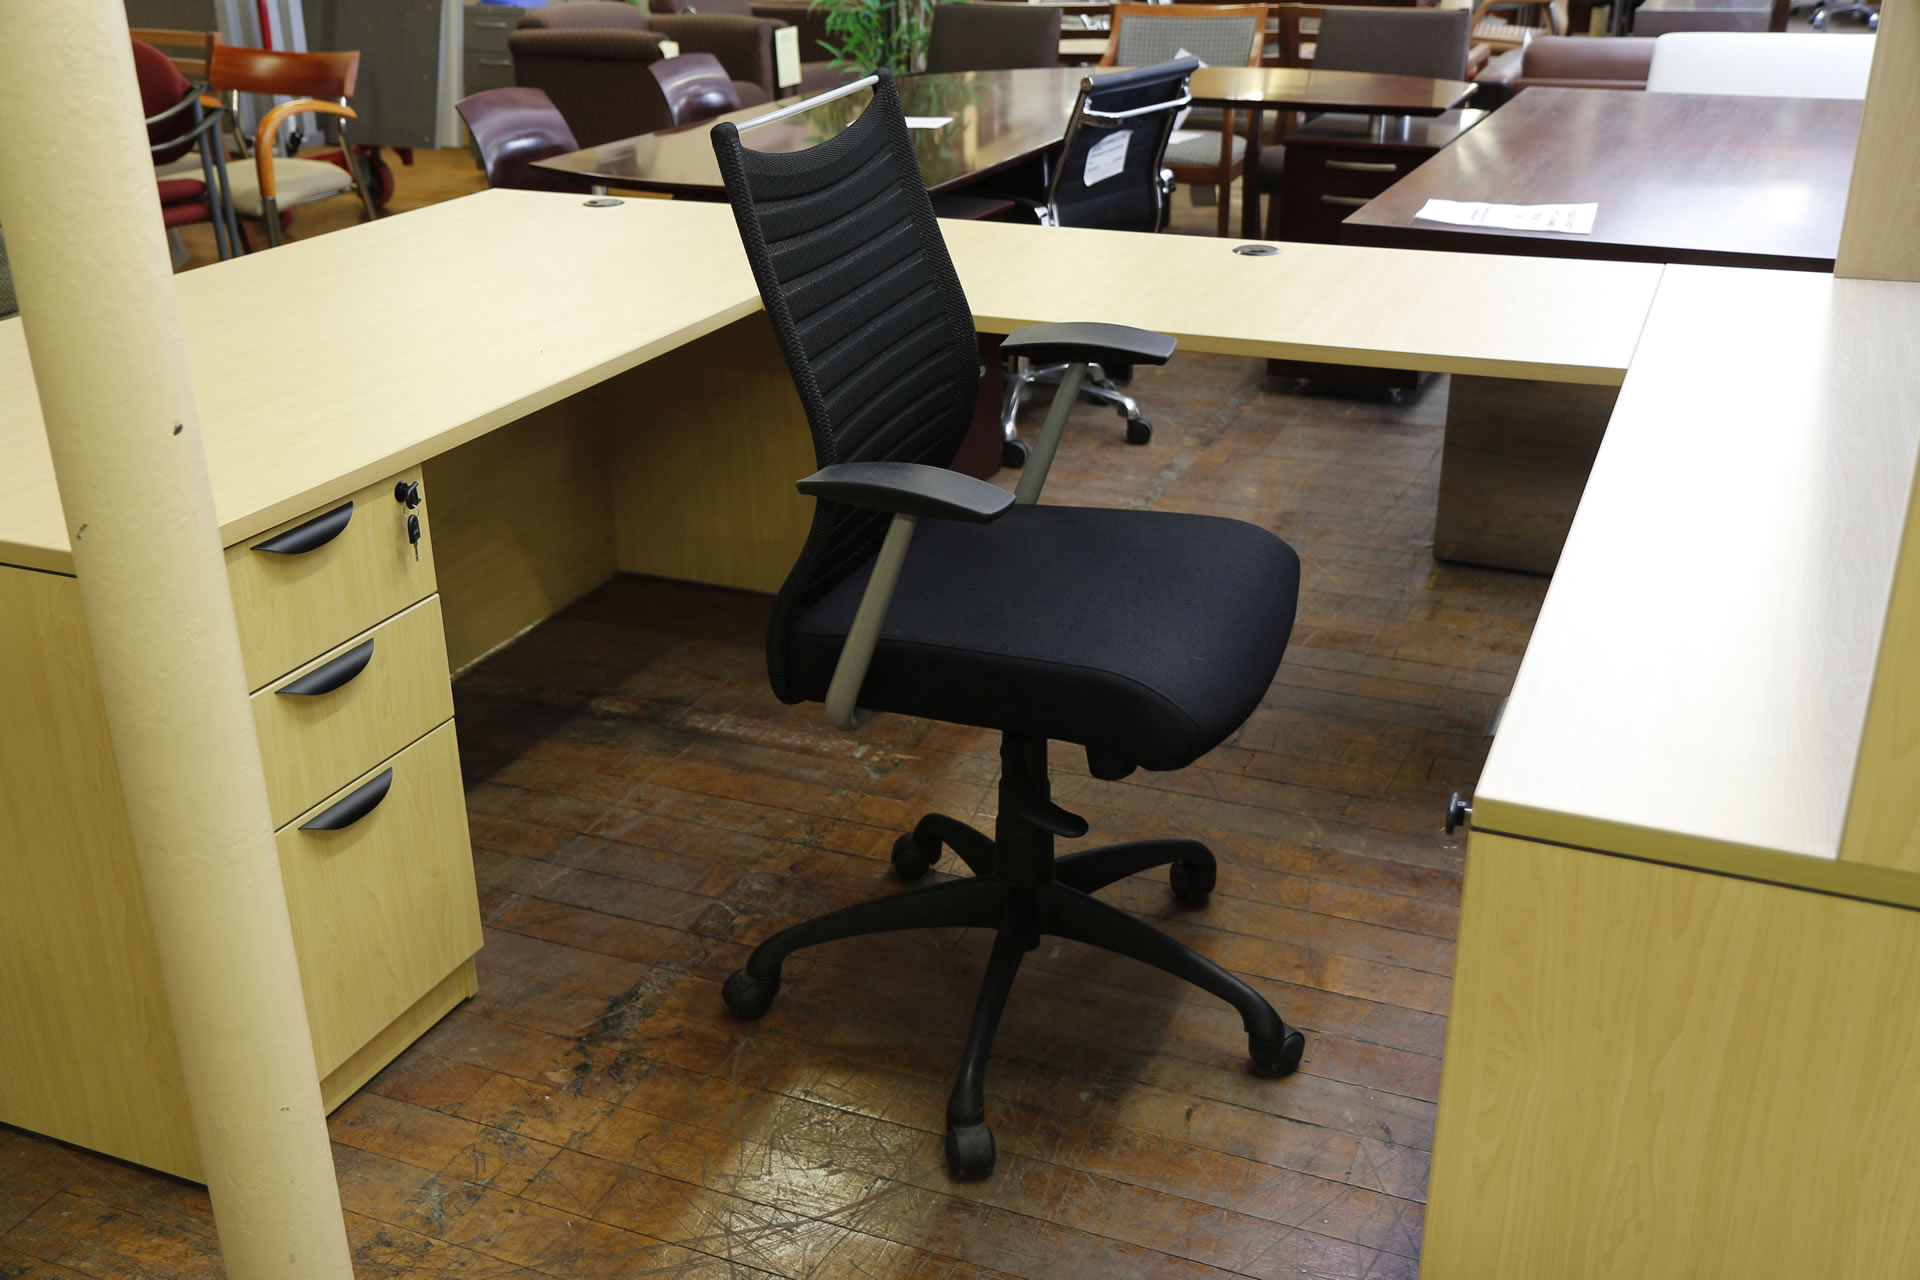 peartreeofficefurniture_peartreeofficefurniture_peartreeofficefurniture_2015-06-18_20-12-34.jpg